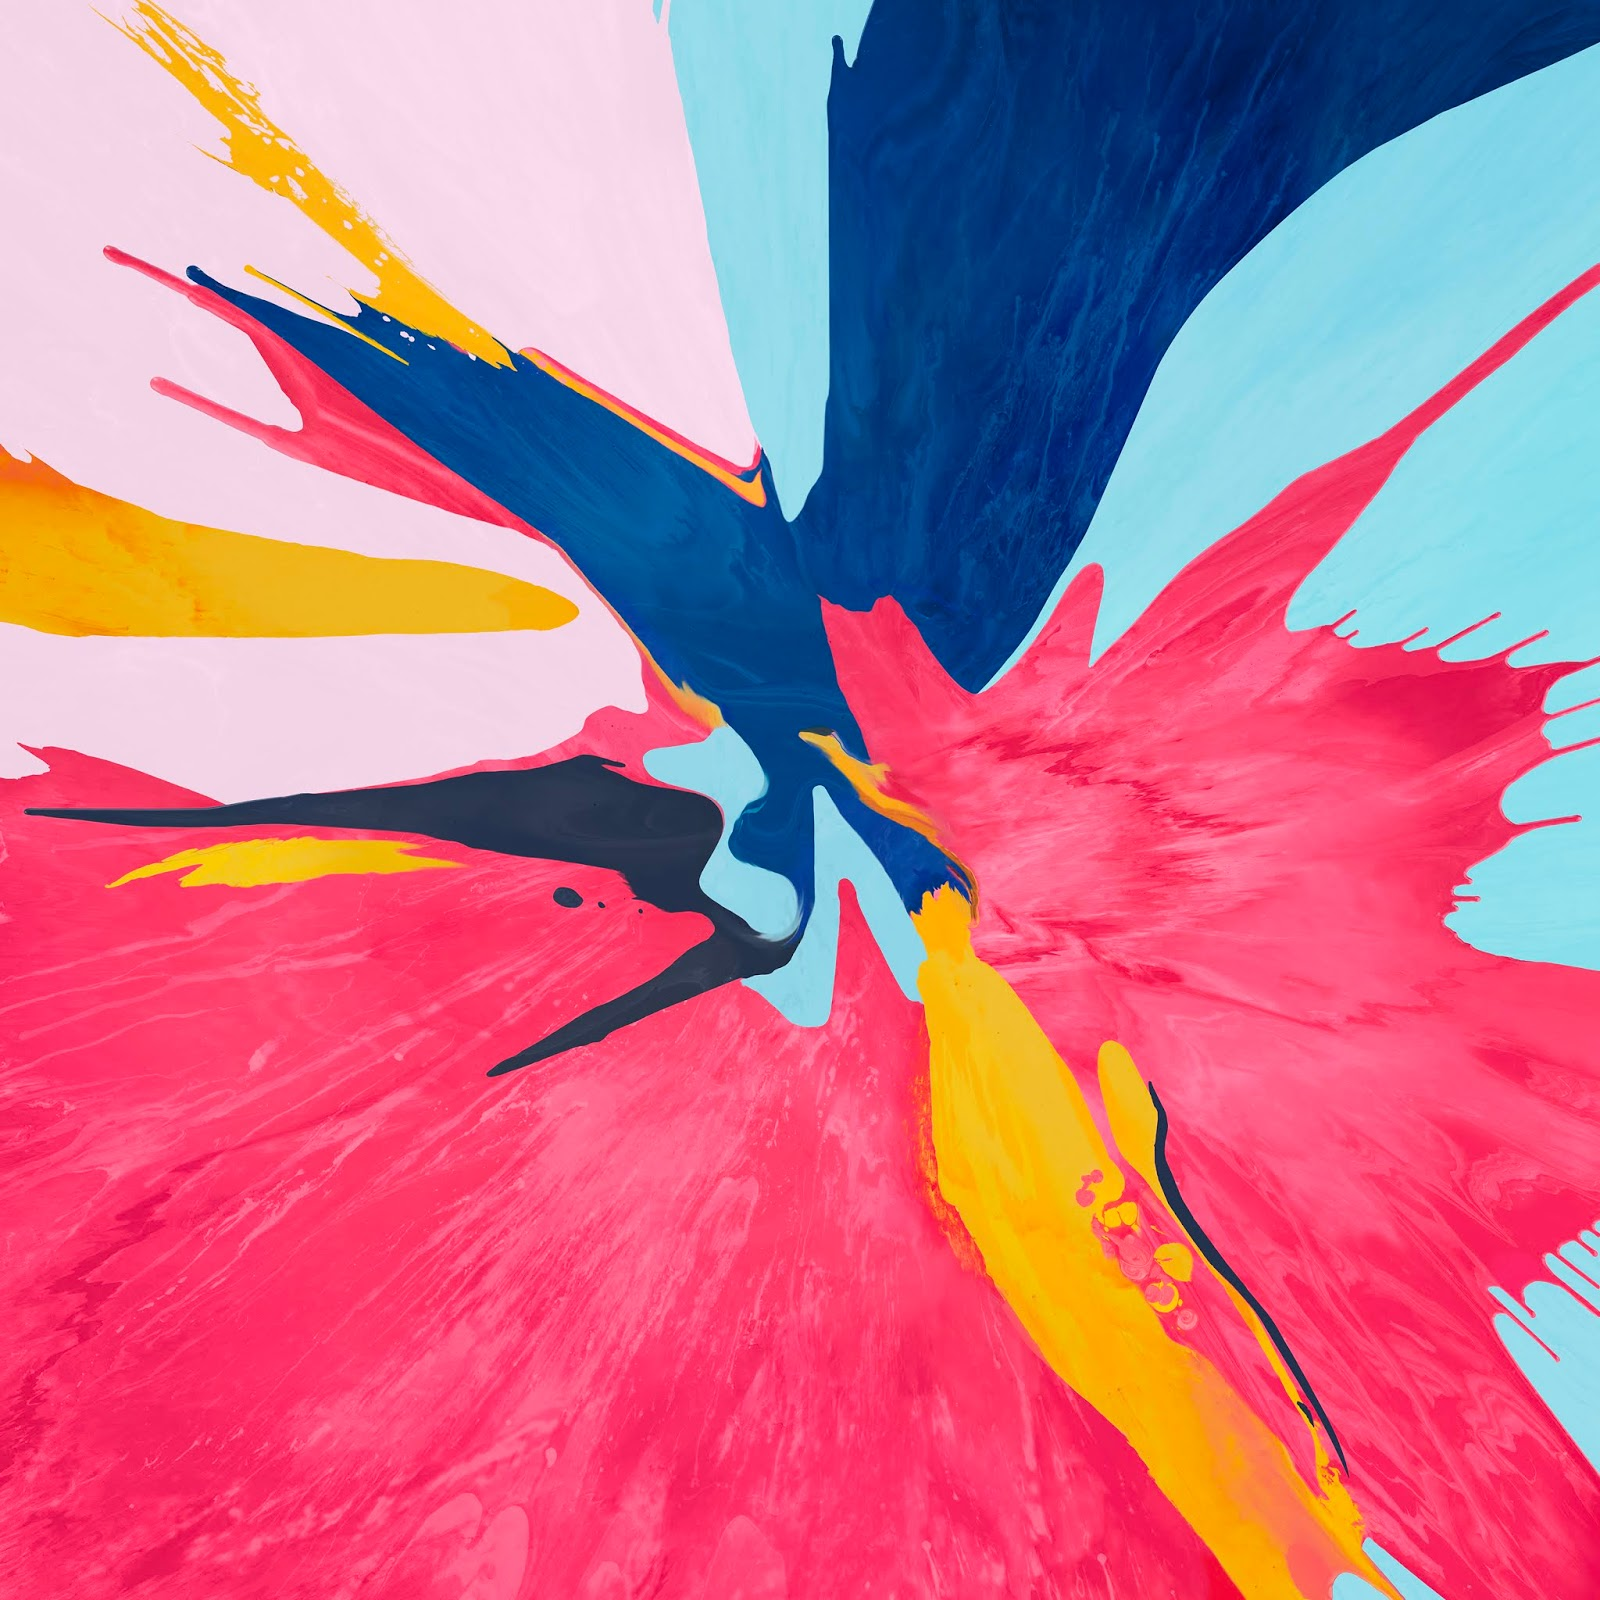 Download The New iPad Pro wallpapers in HD and 4K for your